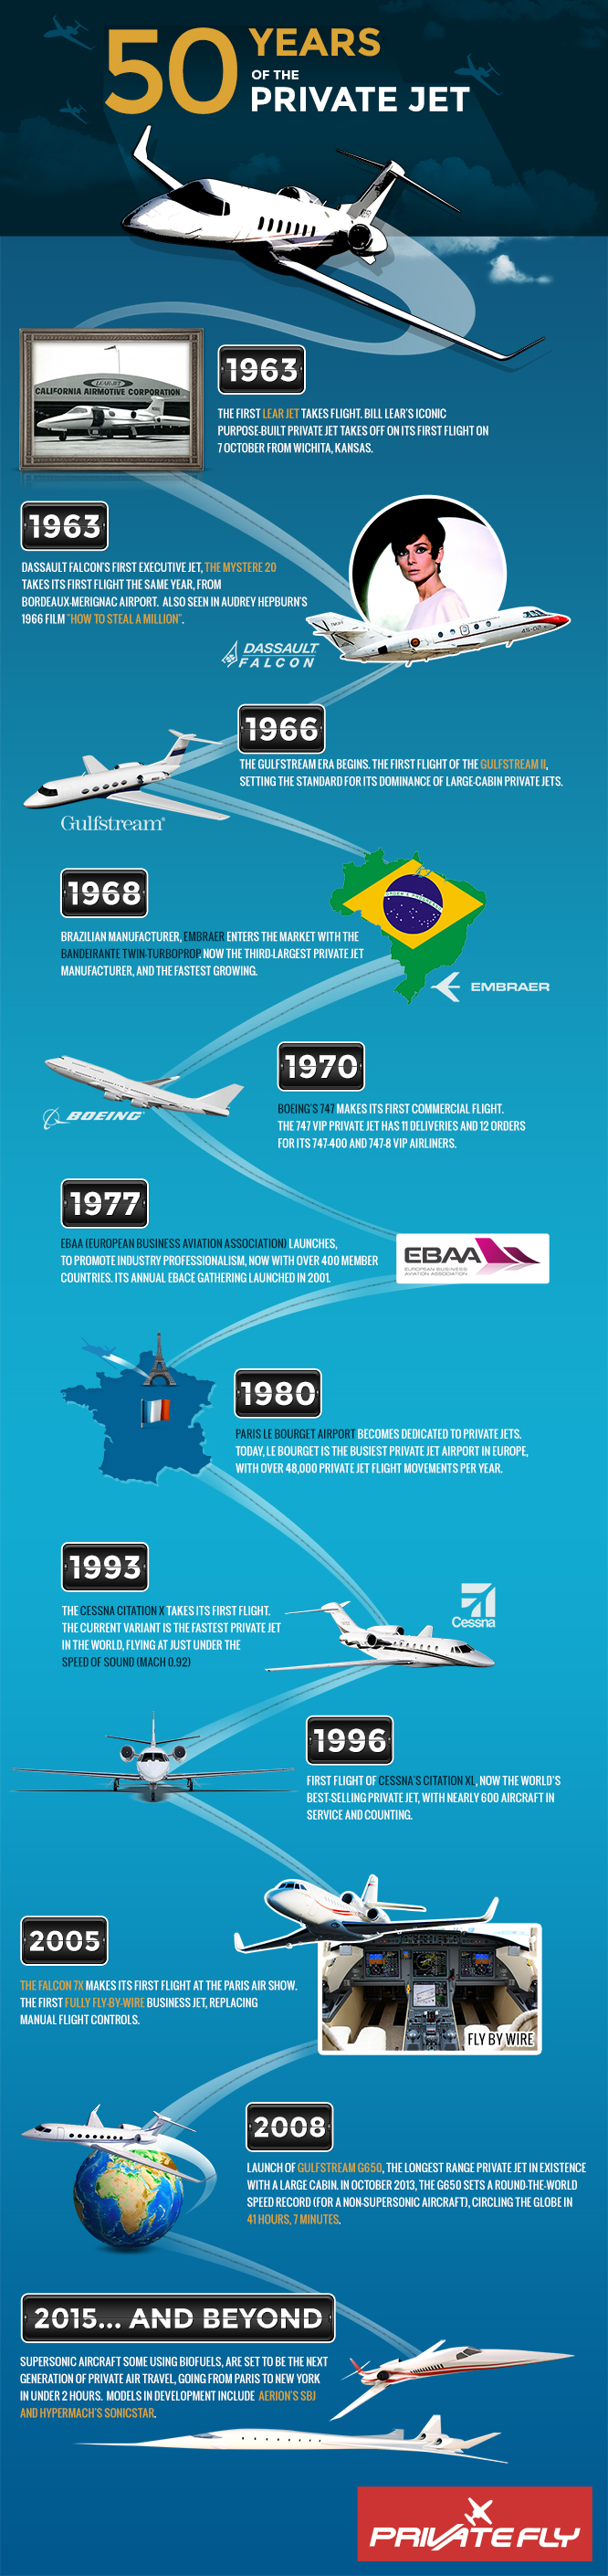 6. 50 Years of the Private Jet